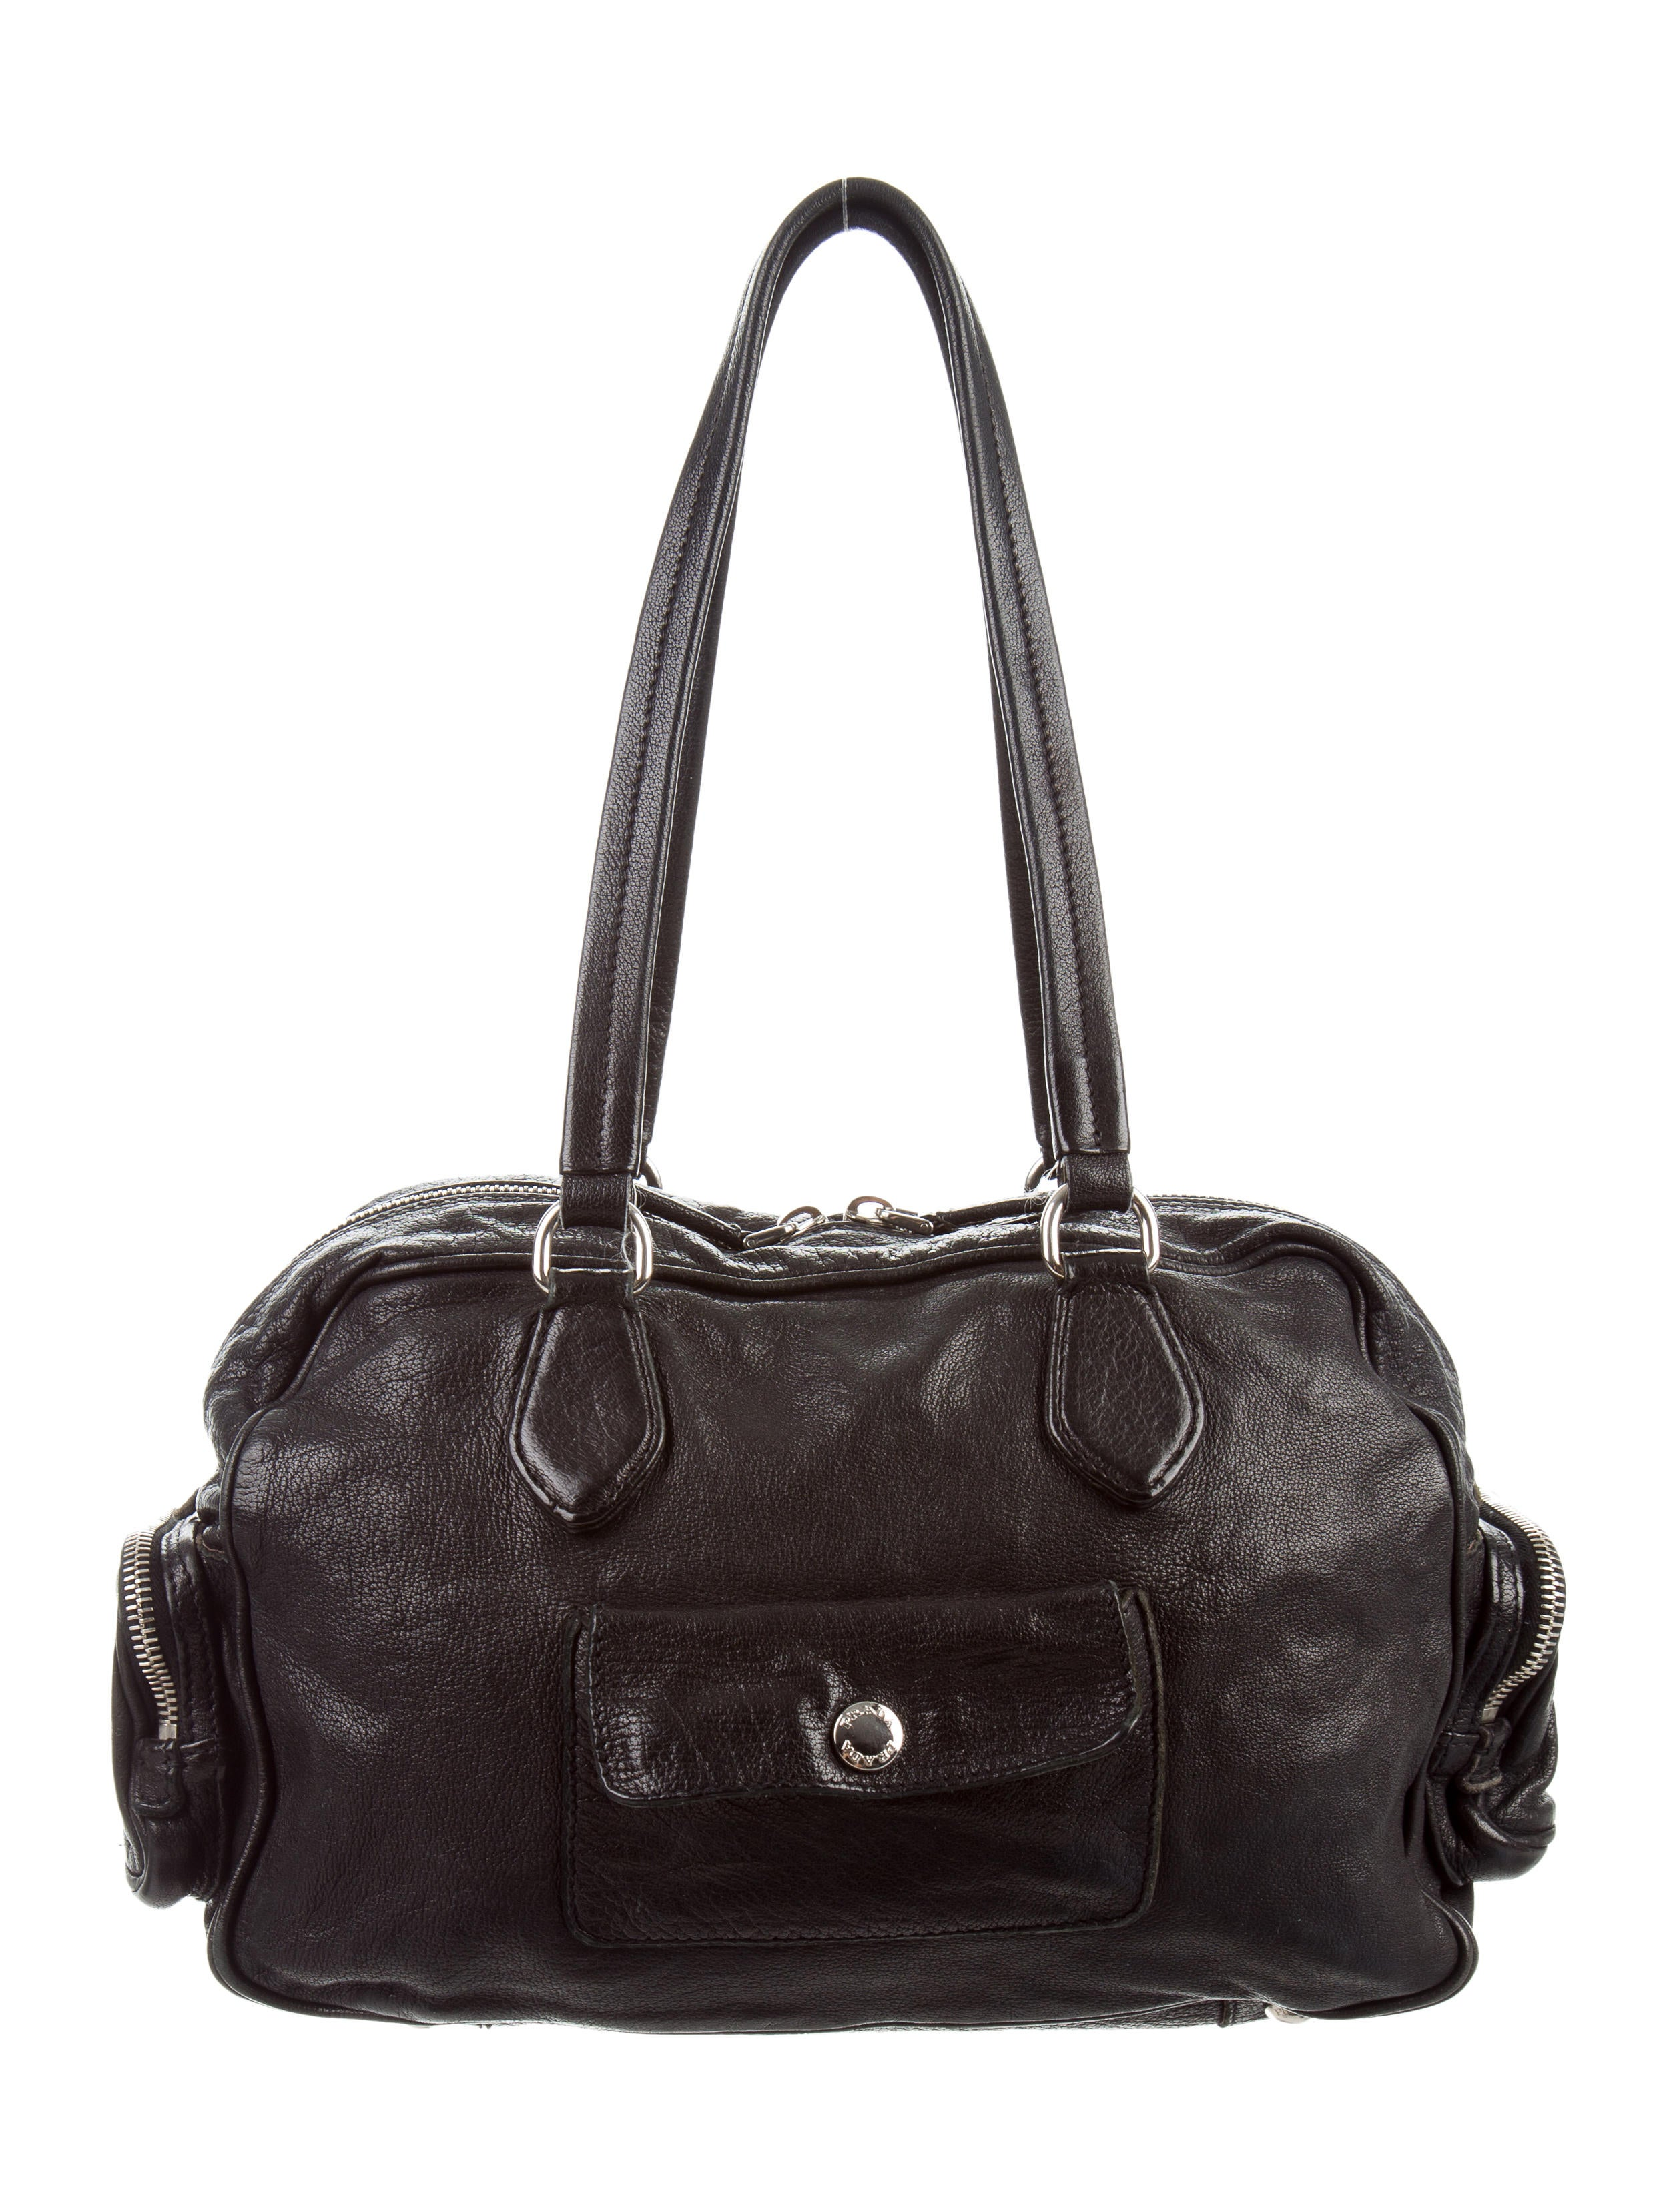 Find great deals on eBay for bowler bag. Shop with confidence.